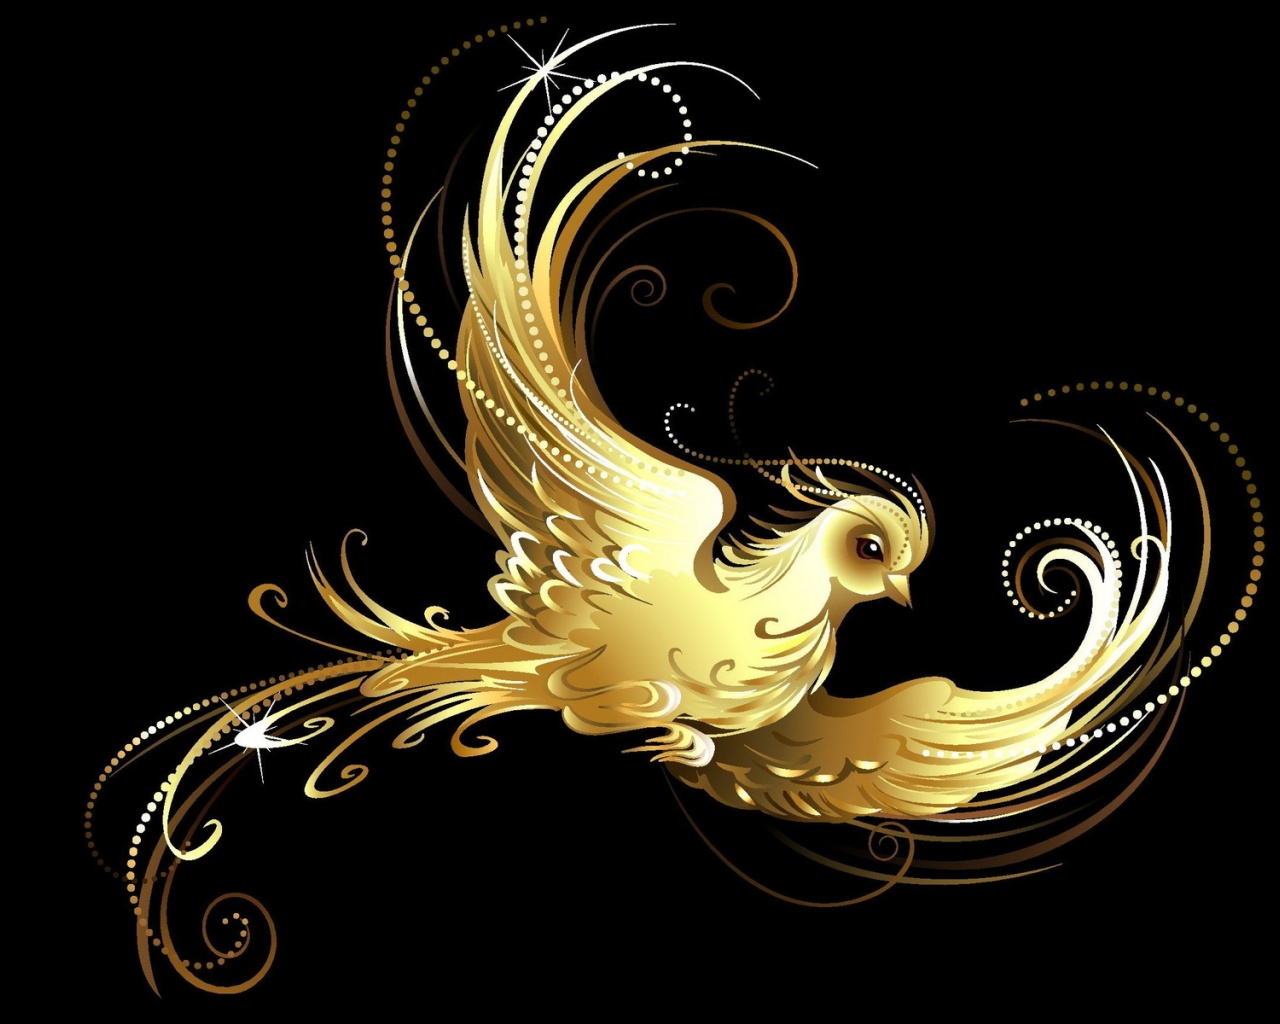 OriginalWide Abstract Golden Bird Wallpapers